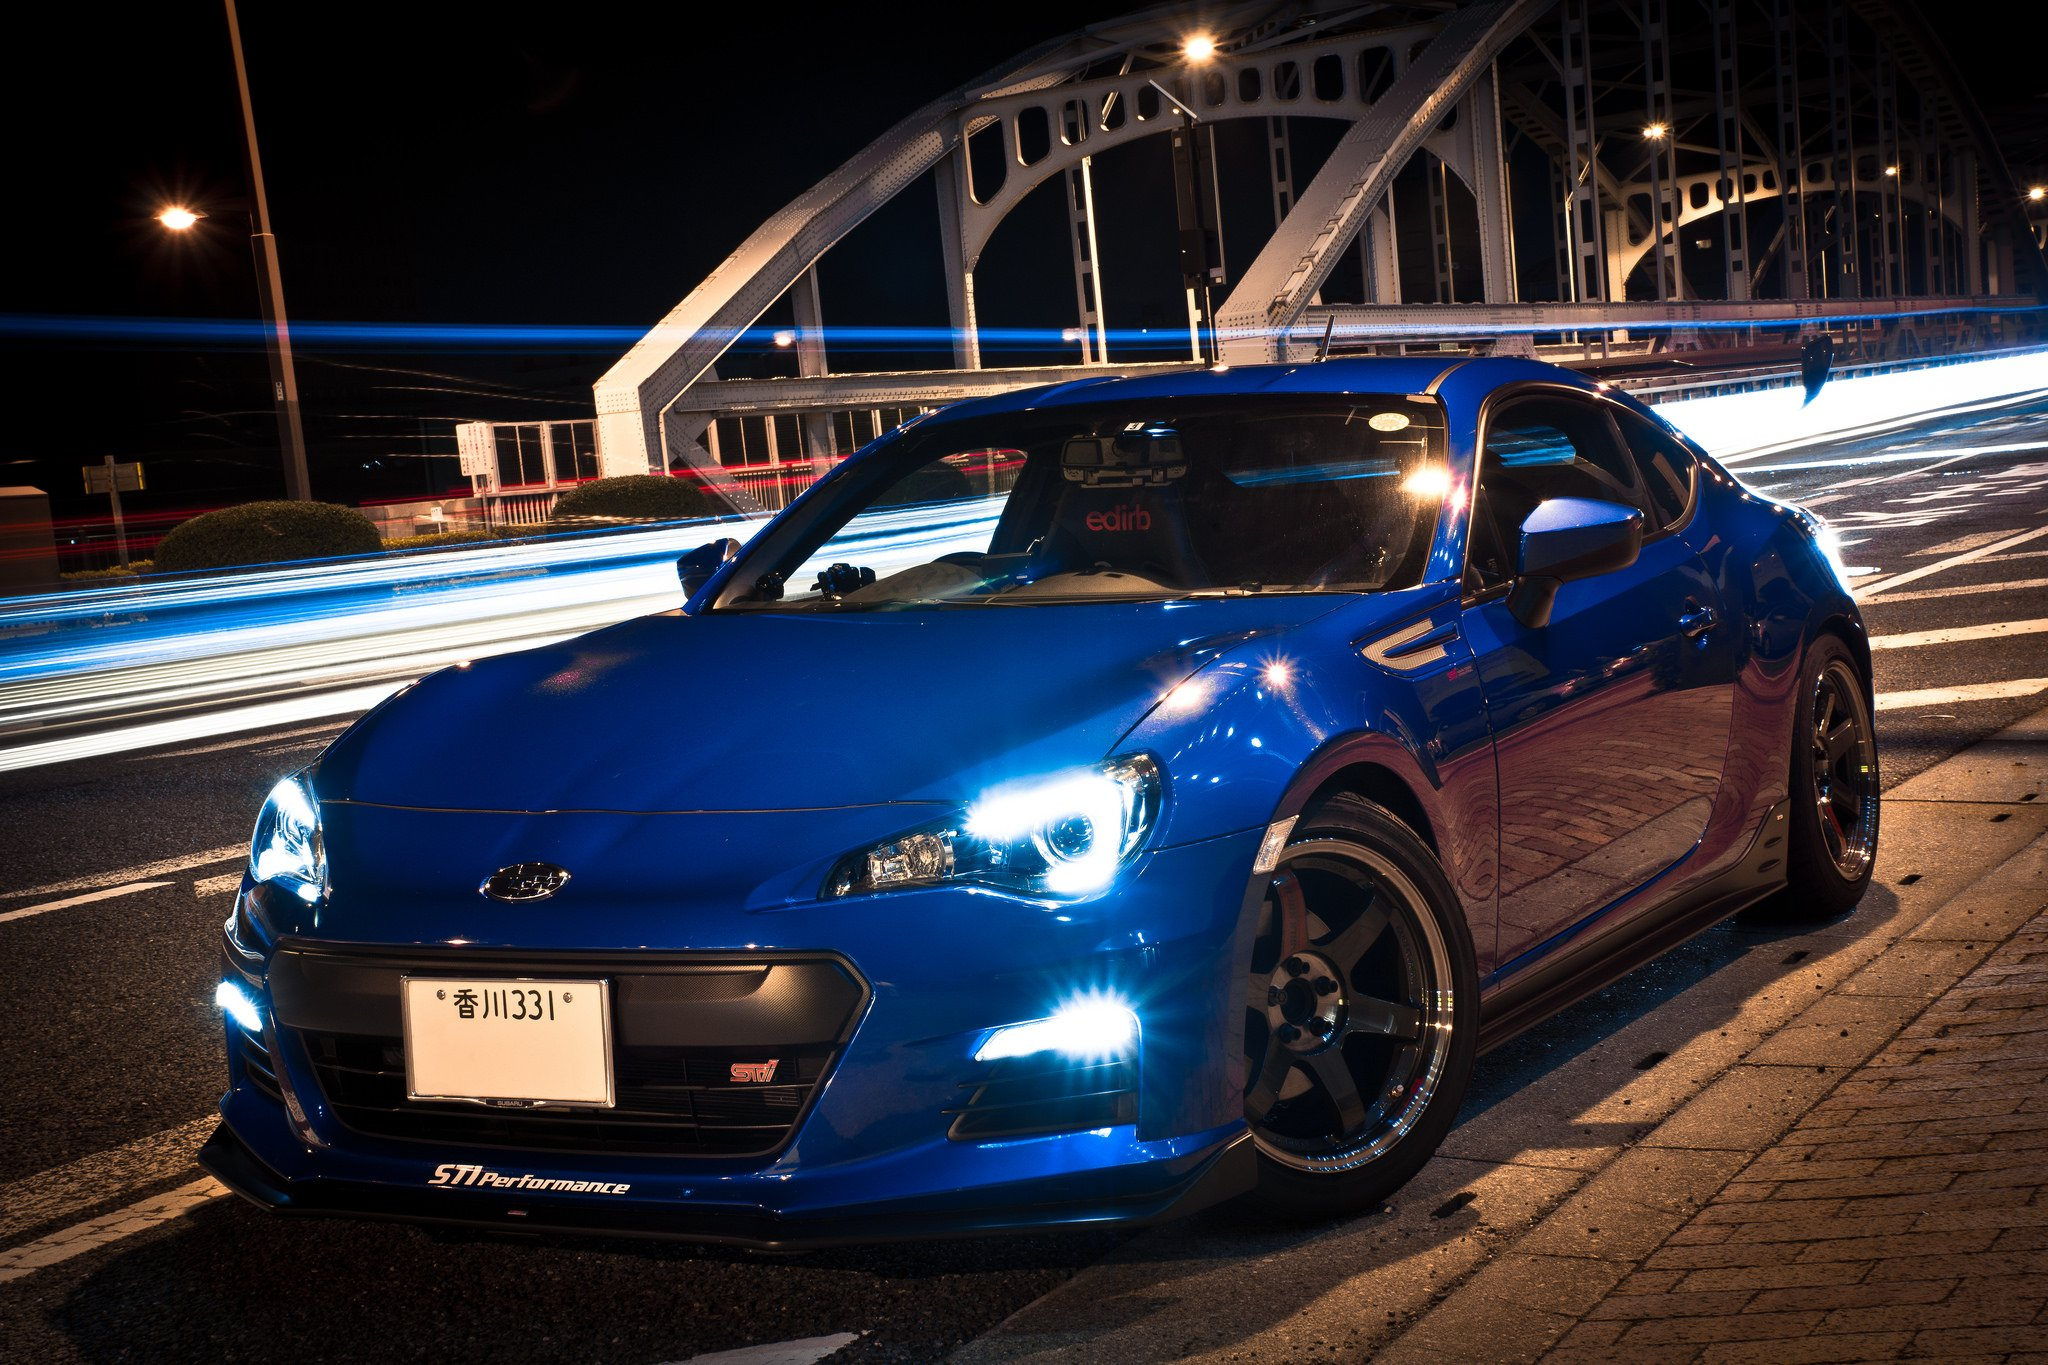 Toyota gt86 scion FRS subaru BRZ coupe tuning cars japan 2048x1365